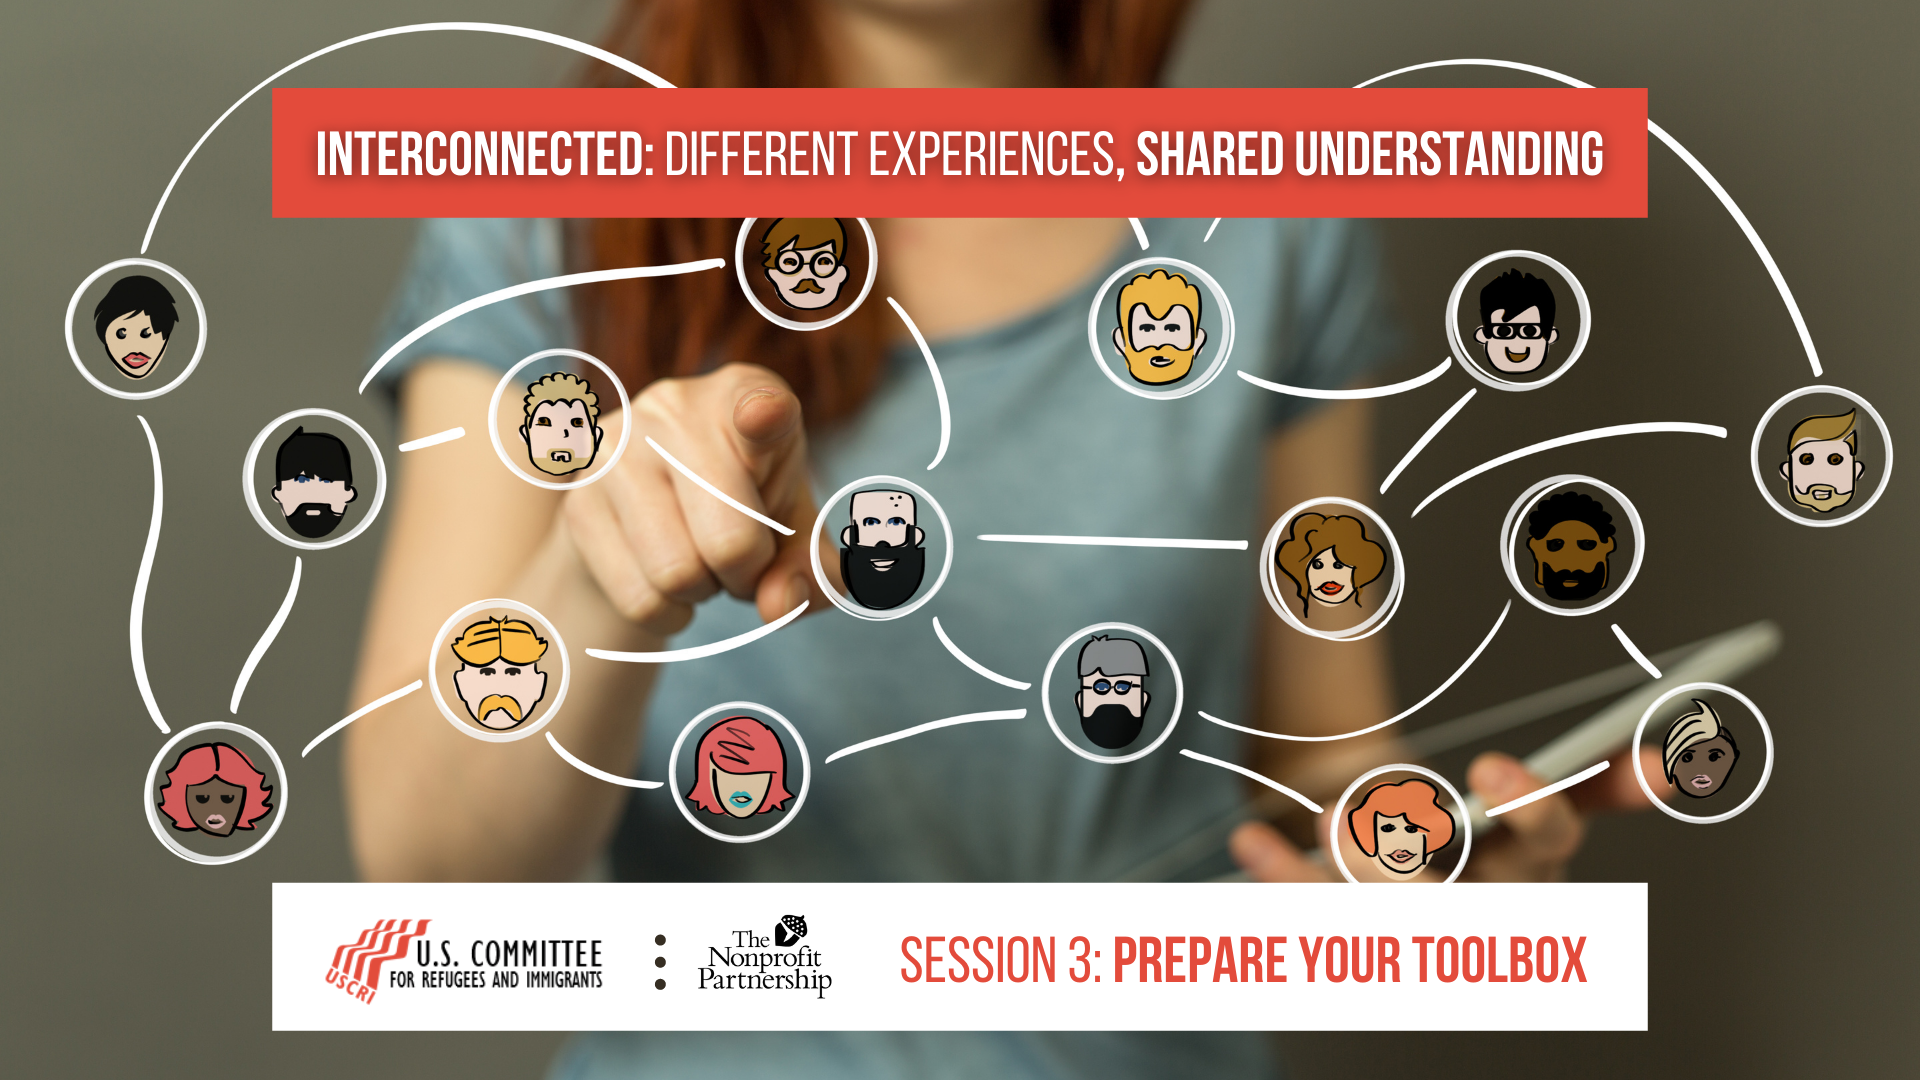 [Zoom Meeting] Interconnected: Different Experiences, Shared Understanding - Prepare Your Toolbox